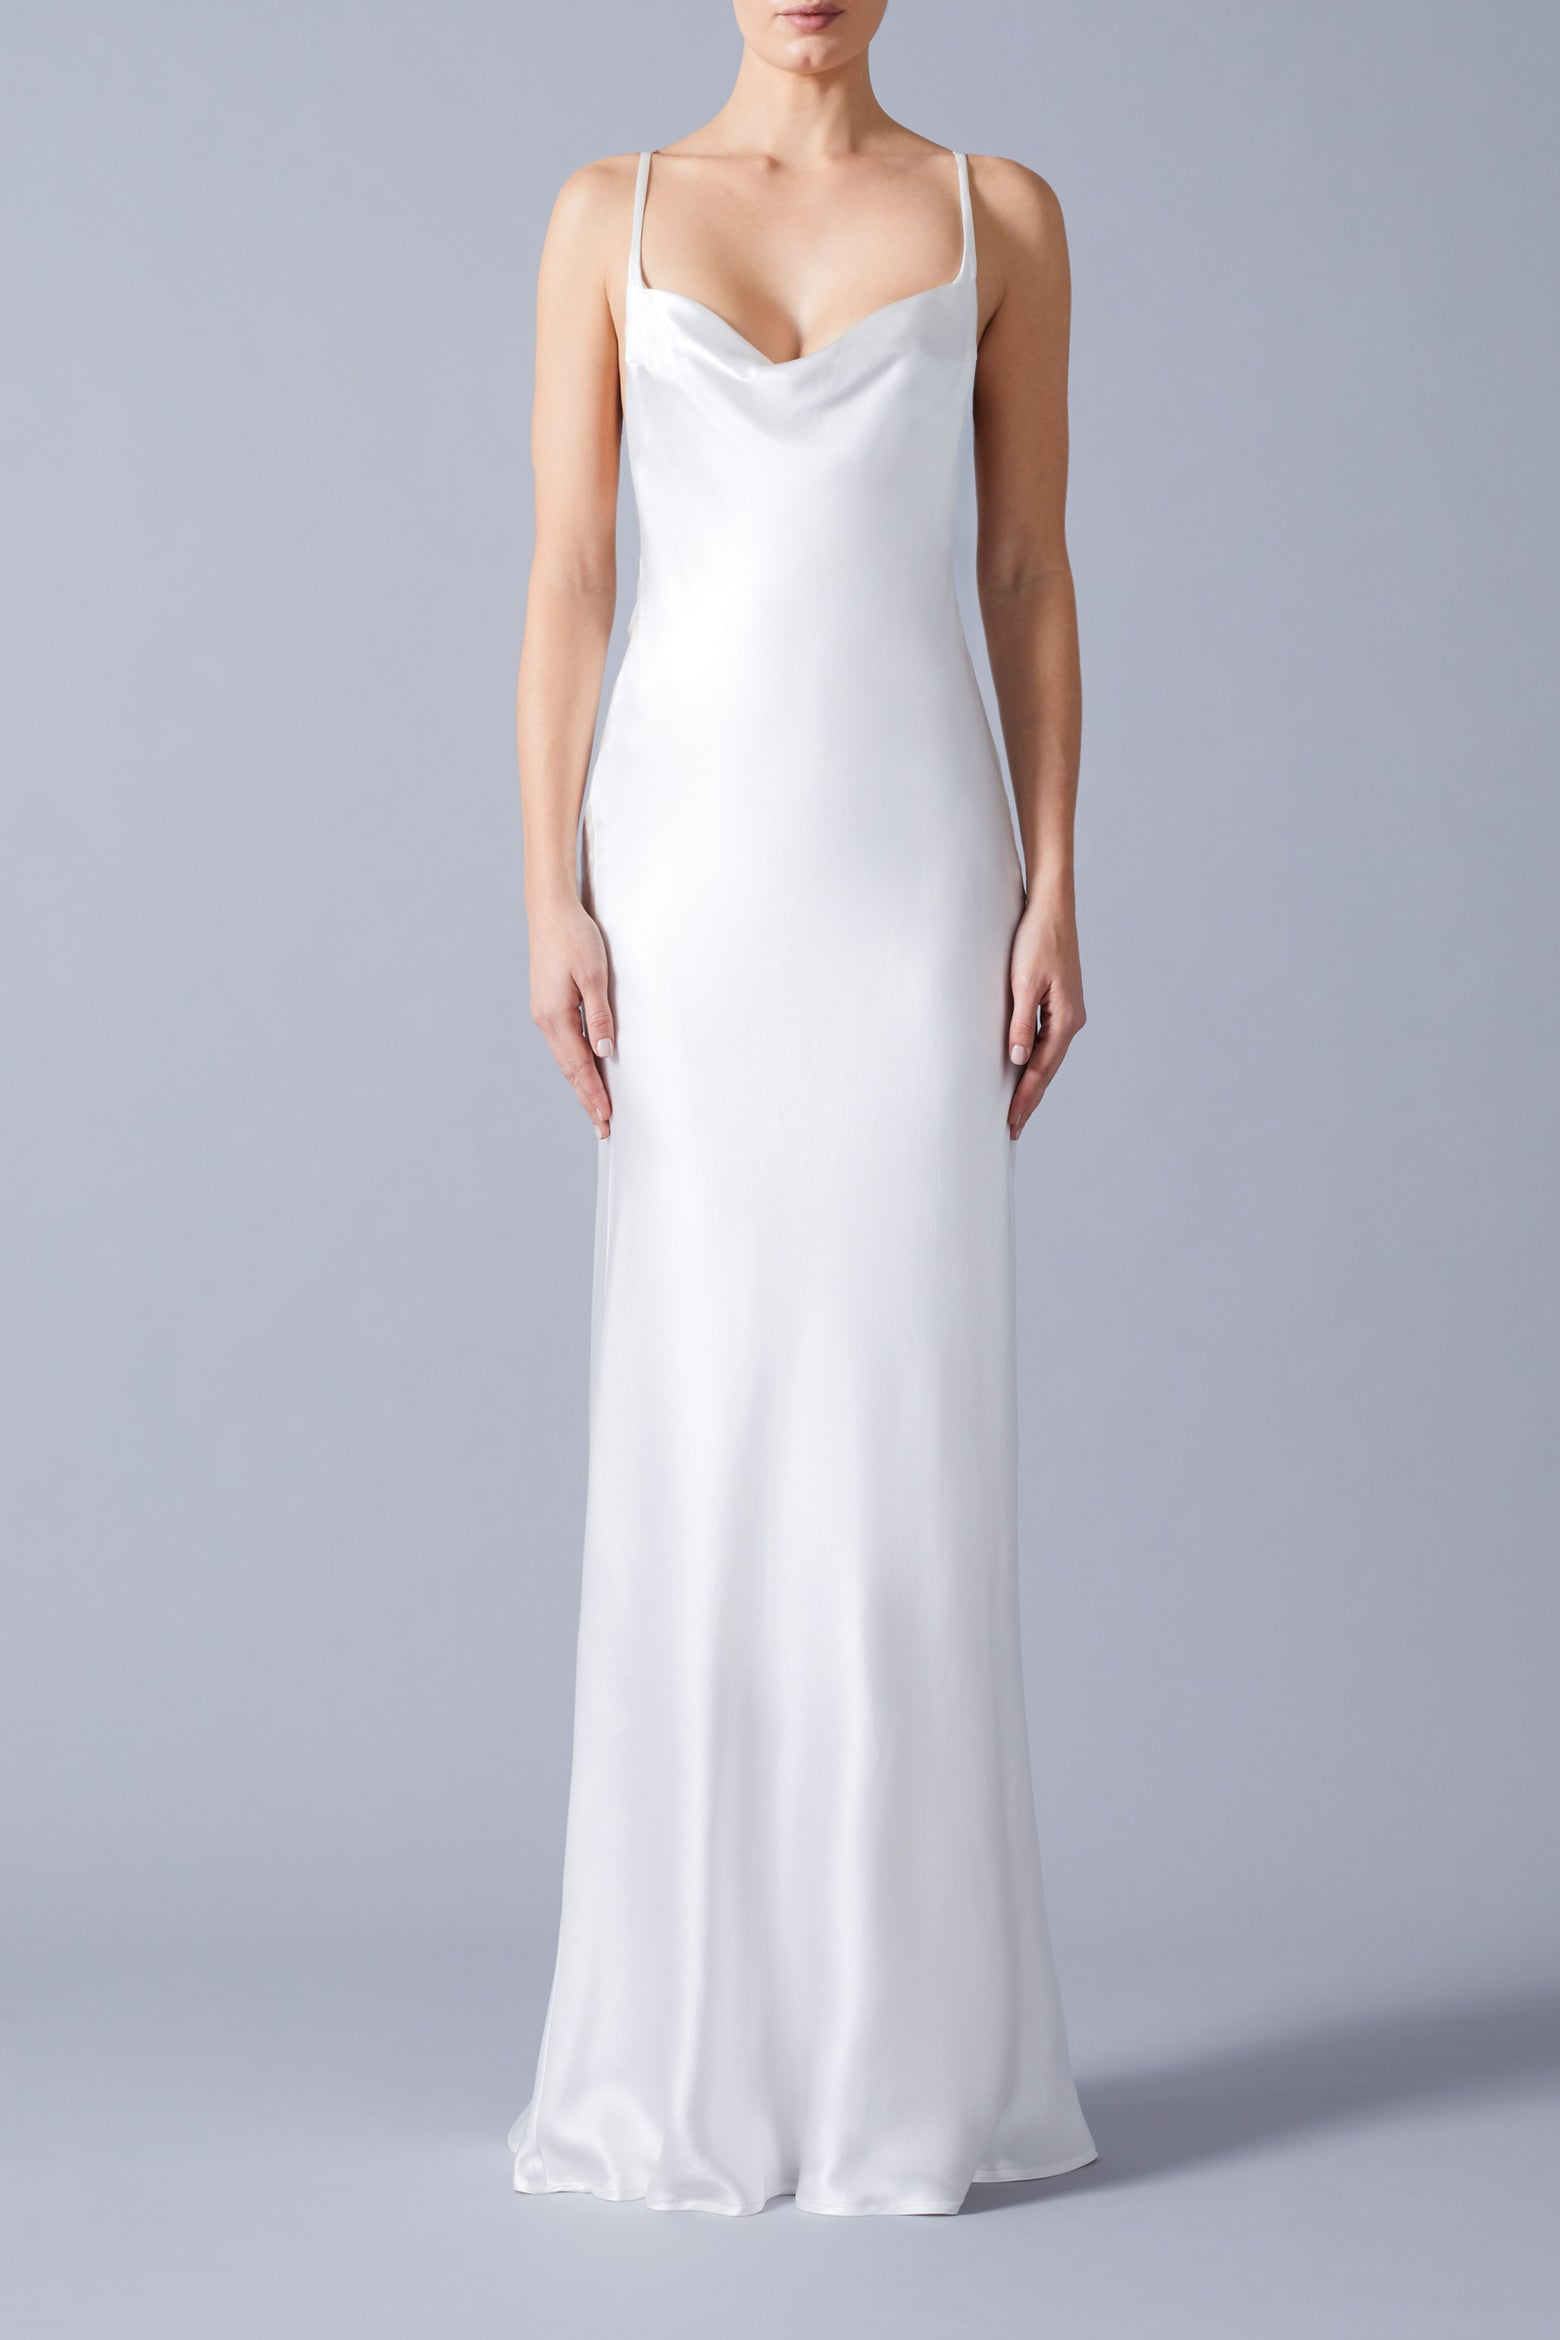 Whiteley Bridal Dress